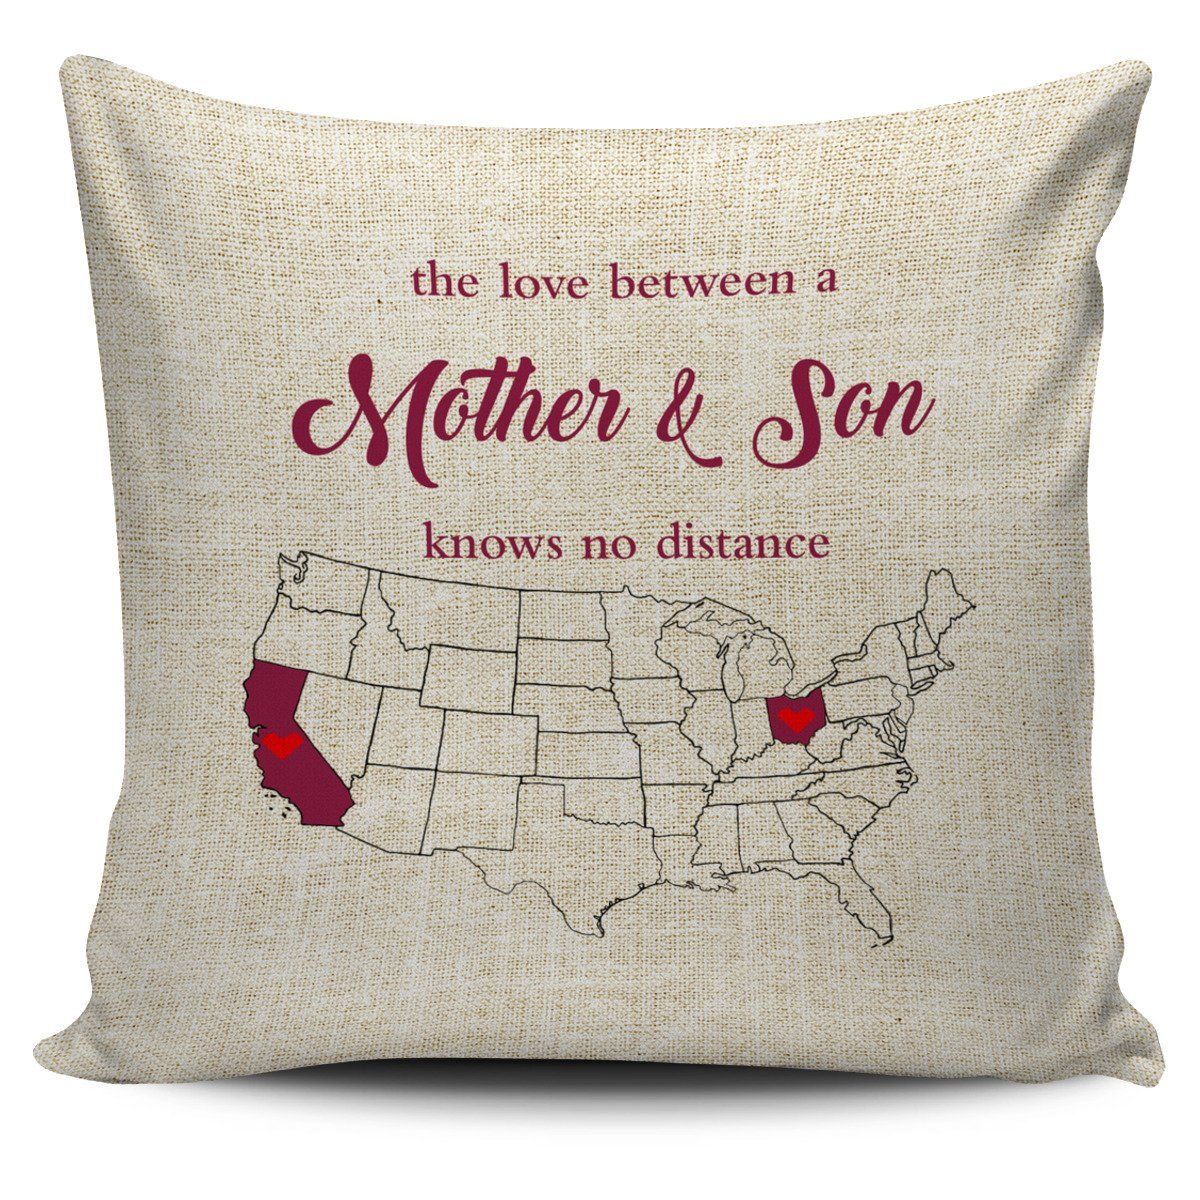 Ohio California The Love Between A Mother And Son Knows No Distance